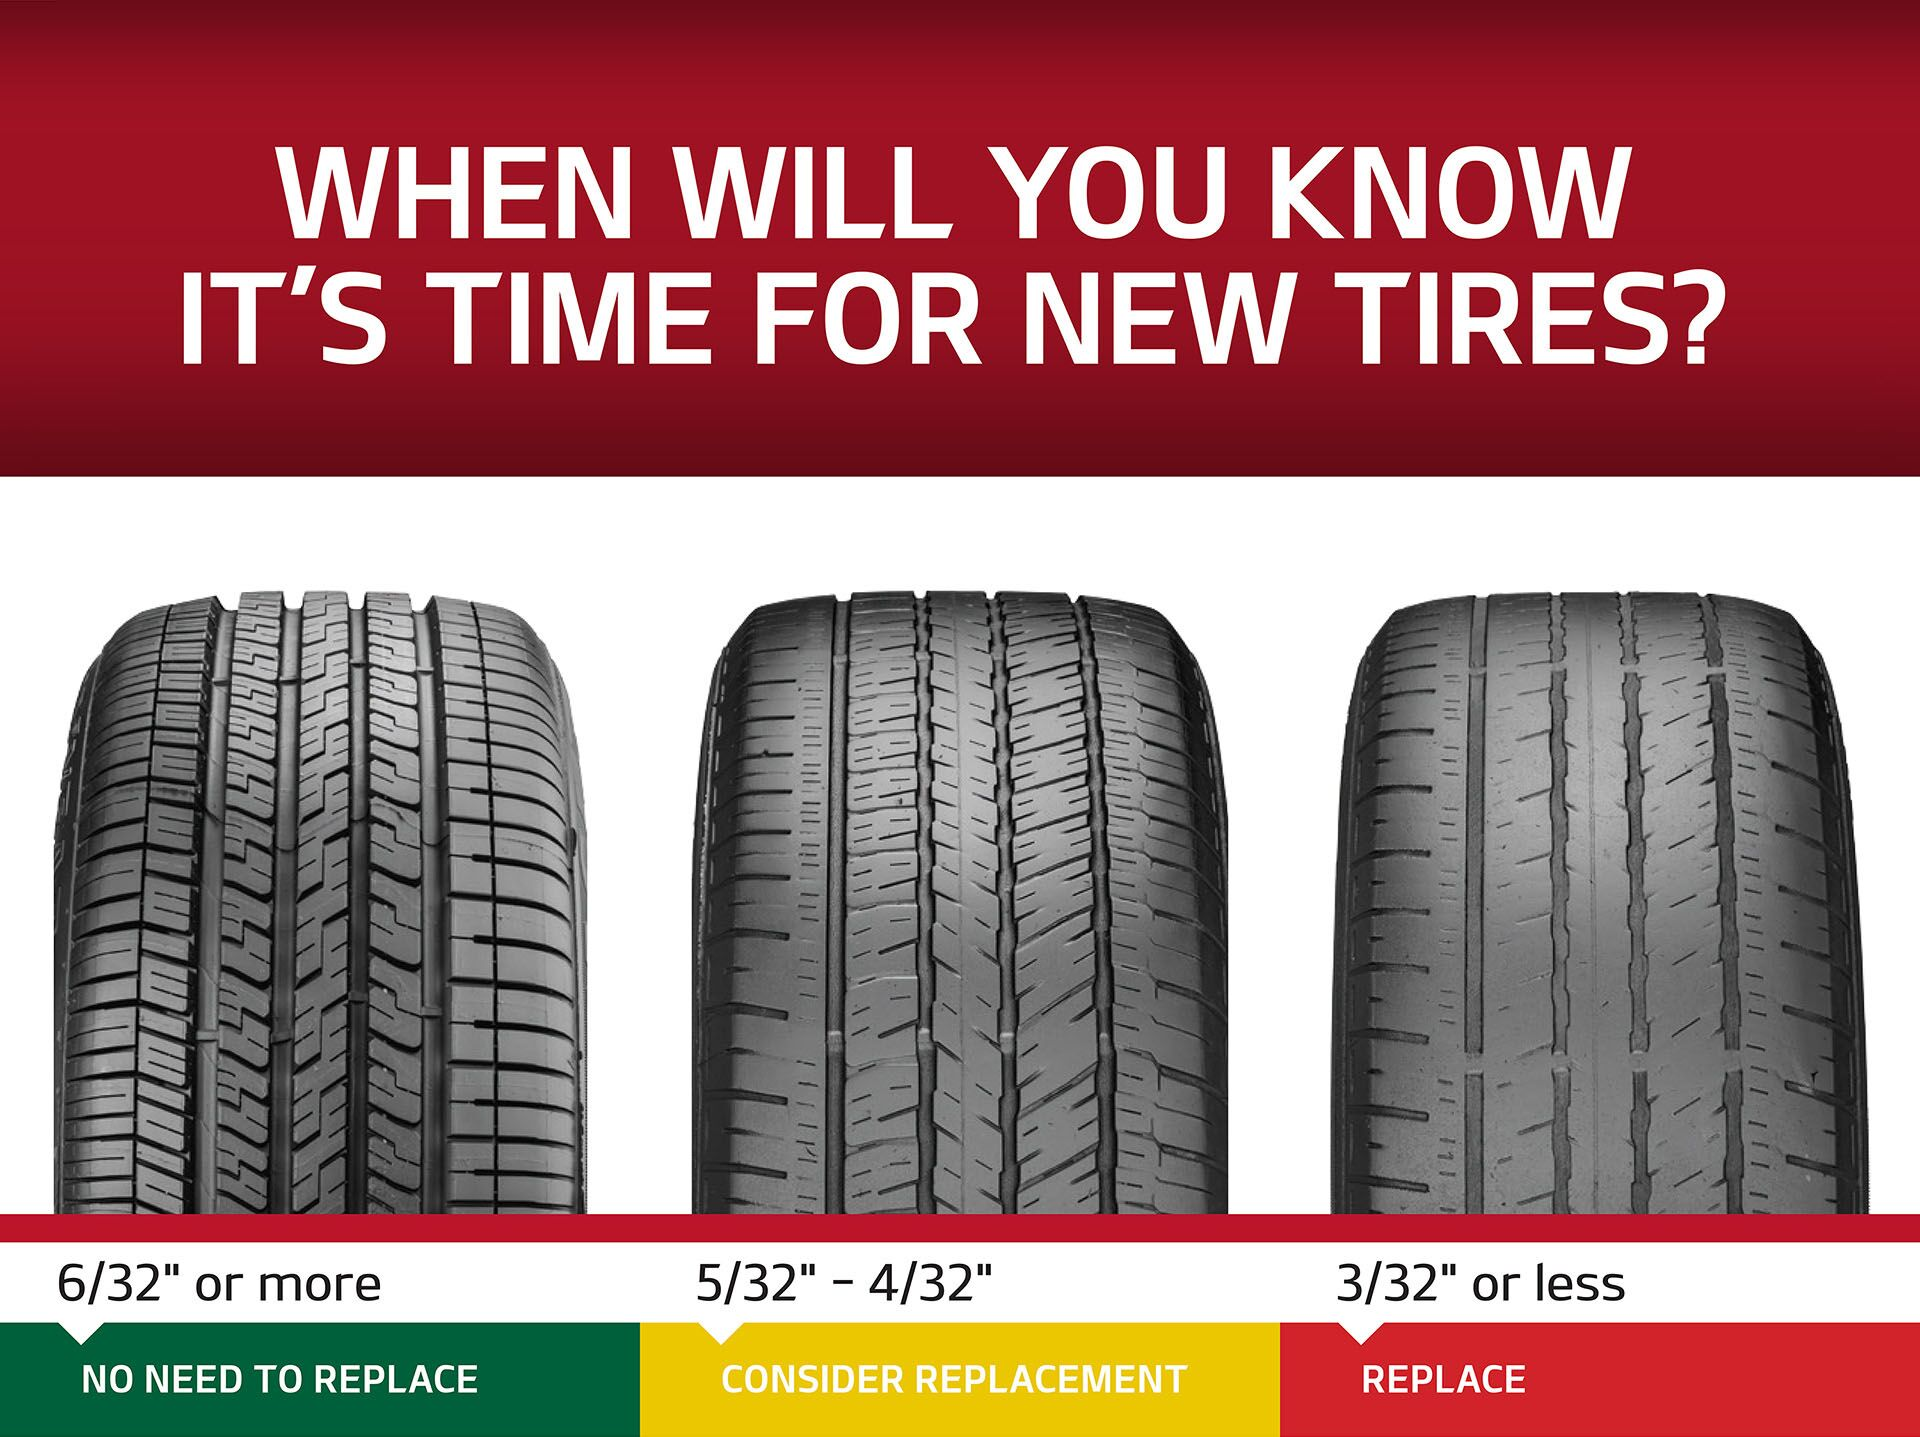 When will you know it's time for new tires?